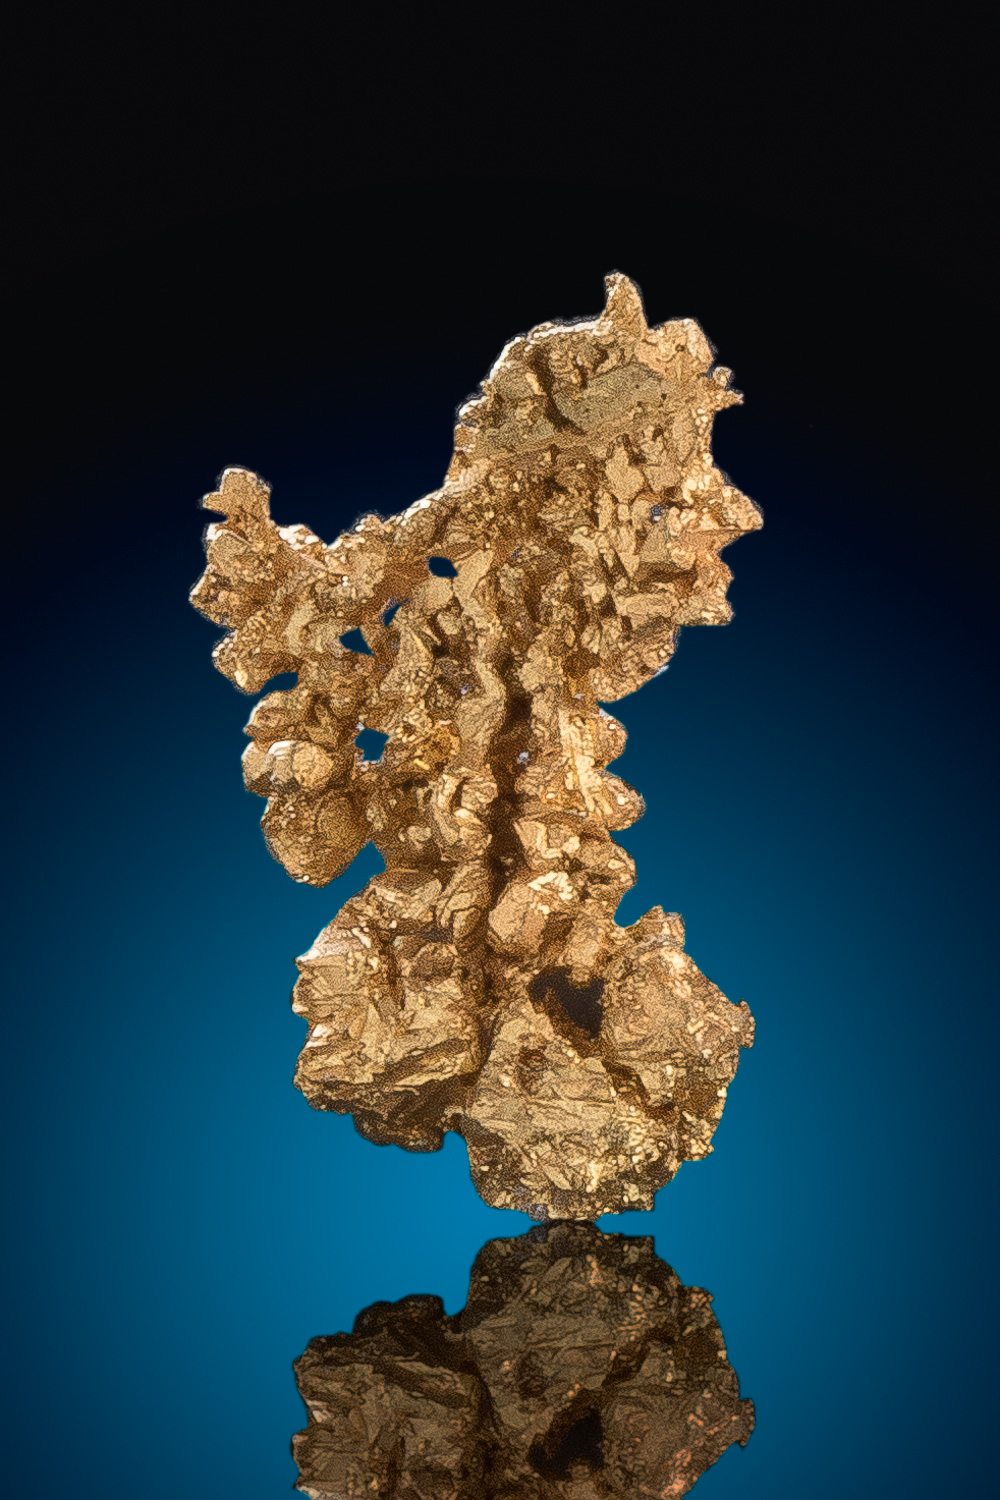 Sharp Micro Crystalized Gold - Round Mountain Gold Mine